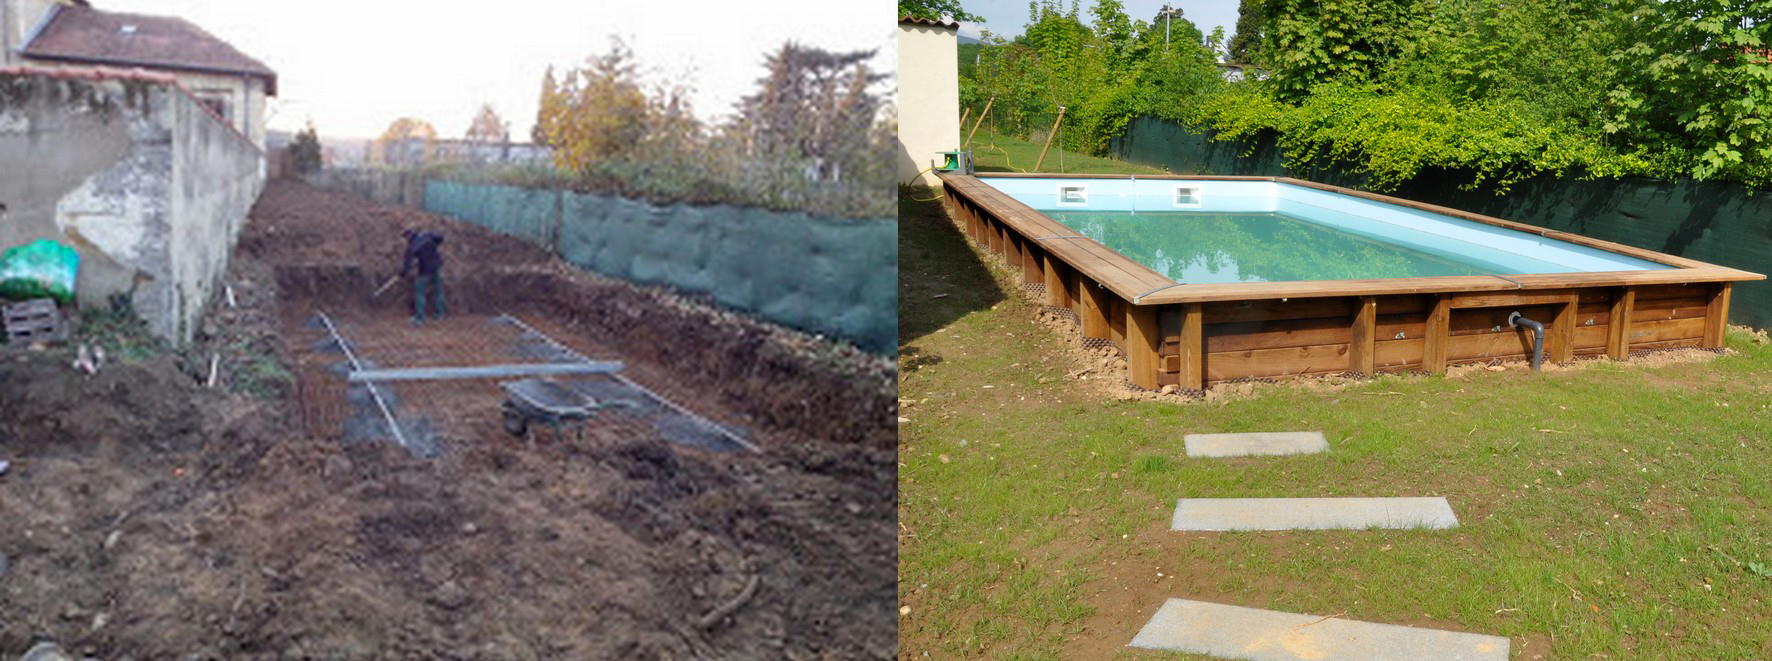 Nos r alisations avant apr s for Piscine et jardin 974